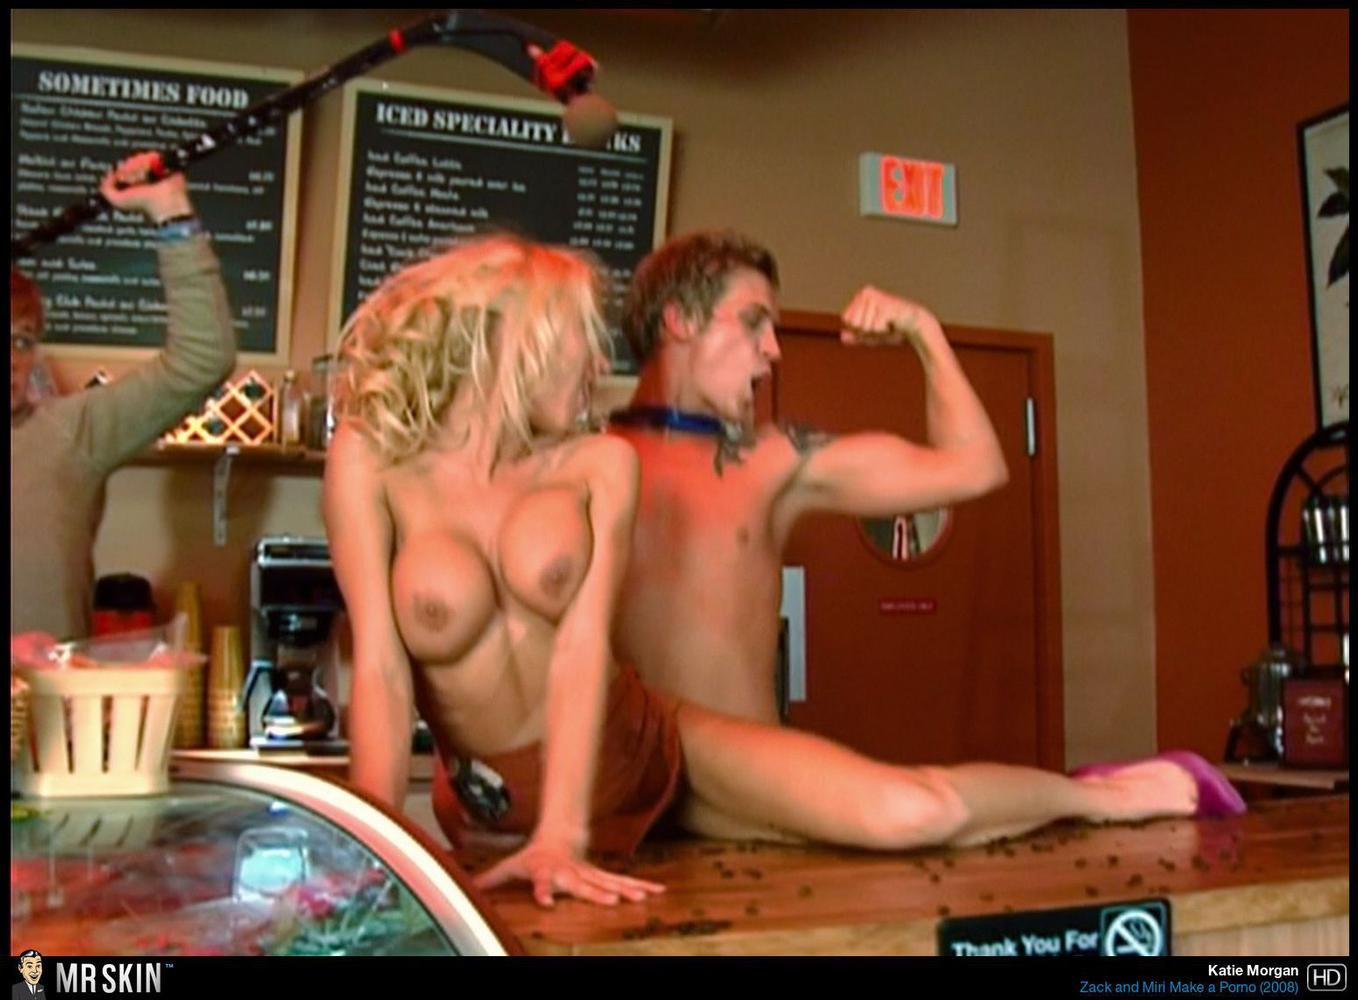 zack-and-miri-make-a-porno-wikipedia-kristy-swanson-clit